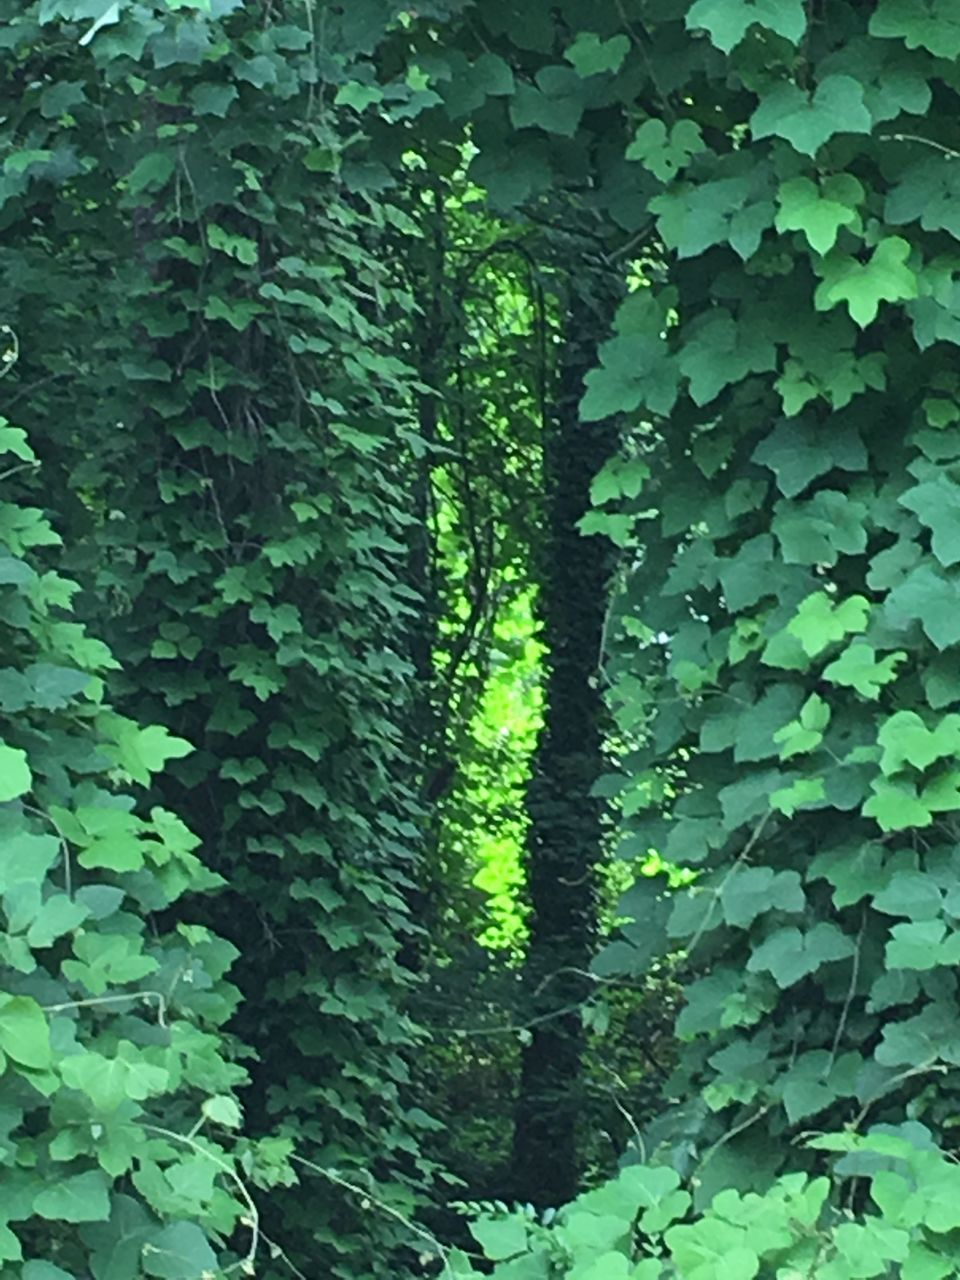 growth, leaf, plant, green color, nature, green, ivy, day, outdoors, forest, tree, lush foliage, no people, tranquility, beauty in nature, close-up